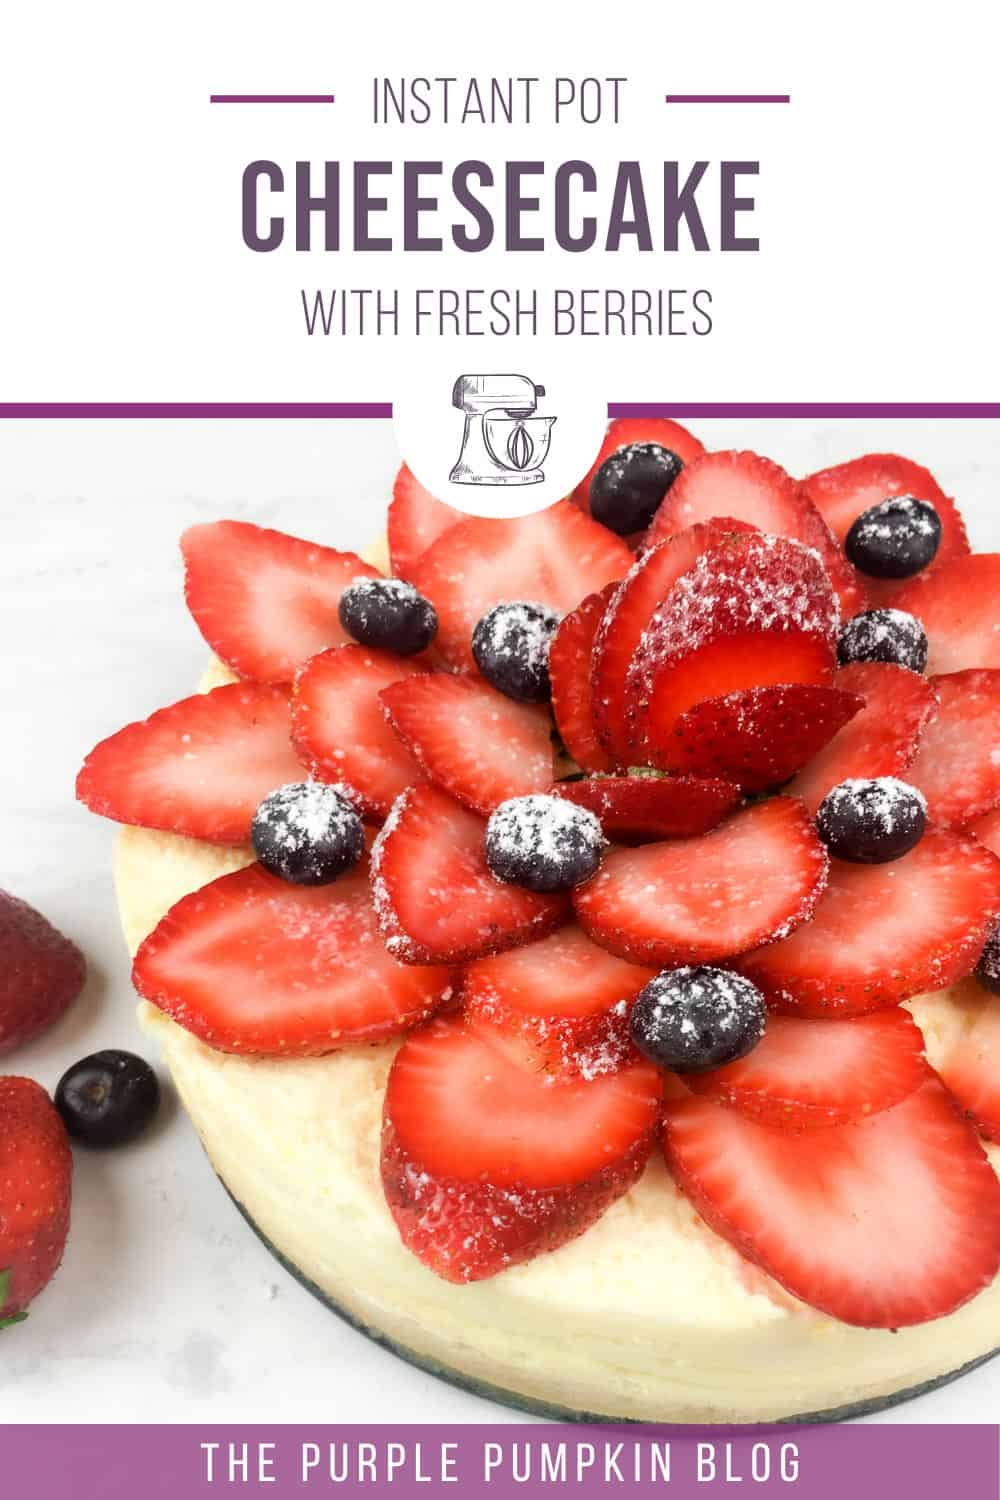 Instant-Pot-Cheesecake-with-Fresh-Berries